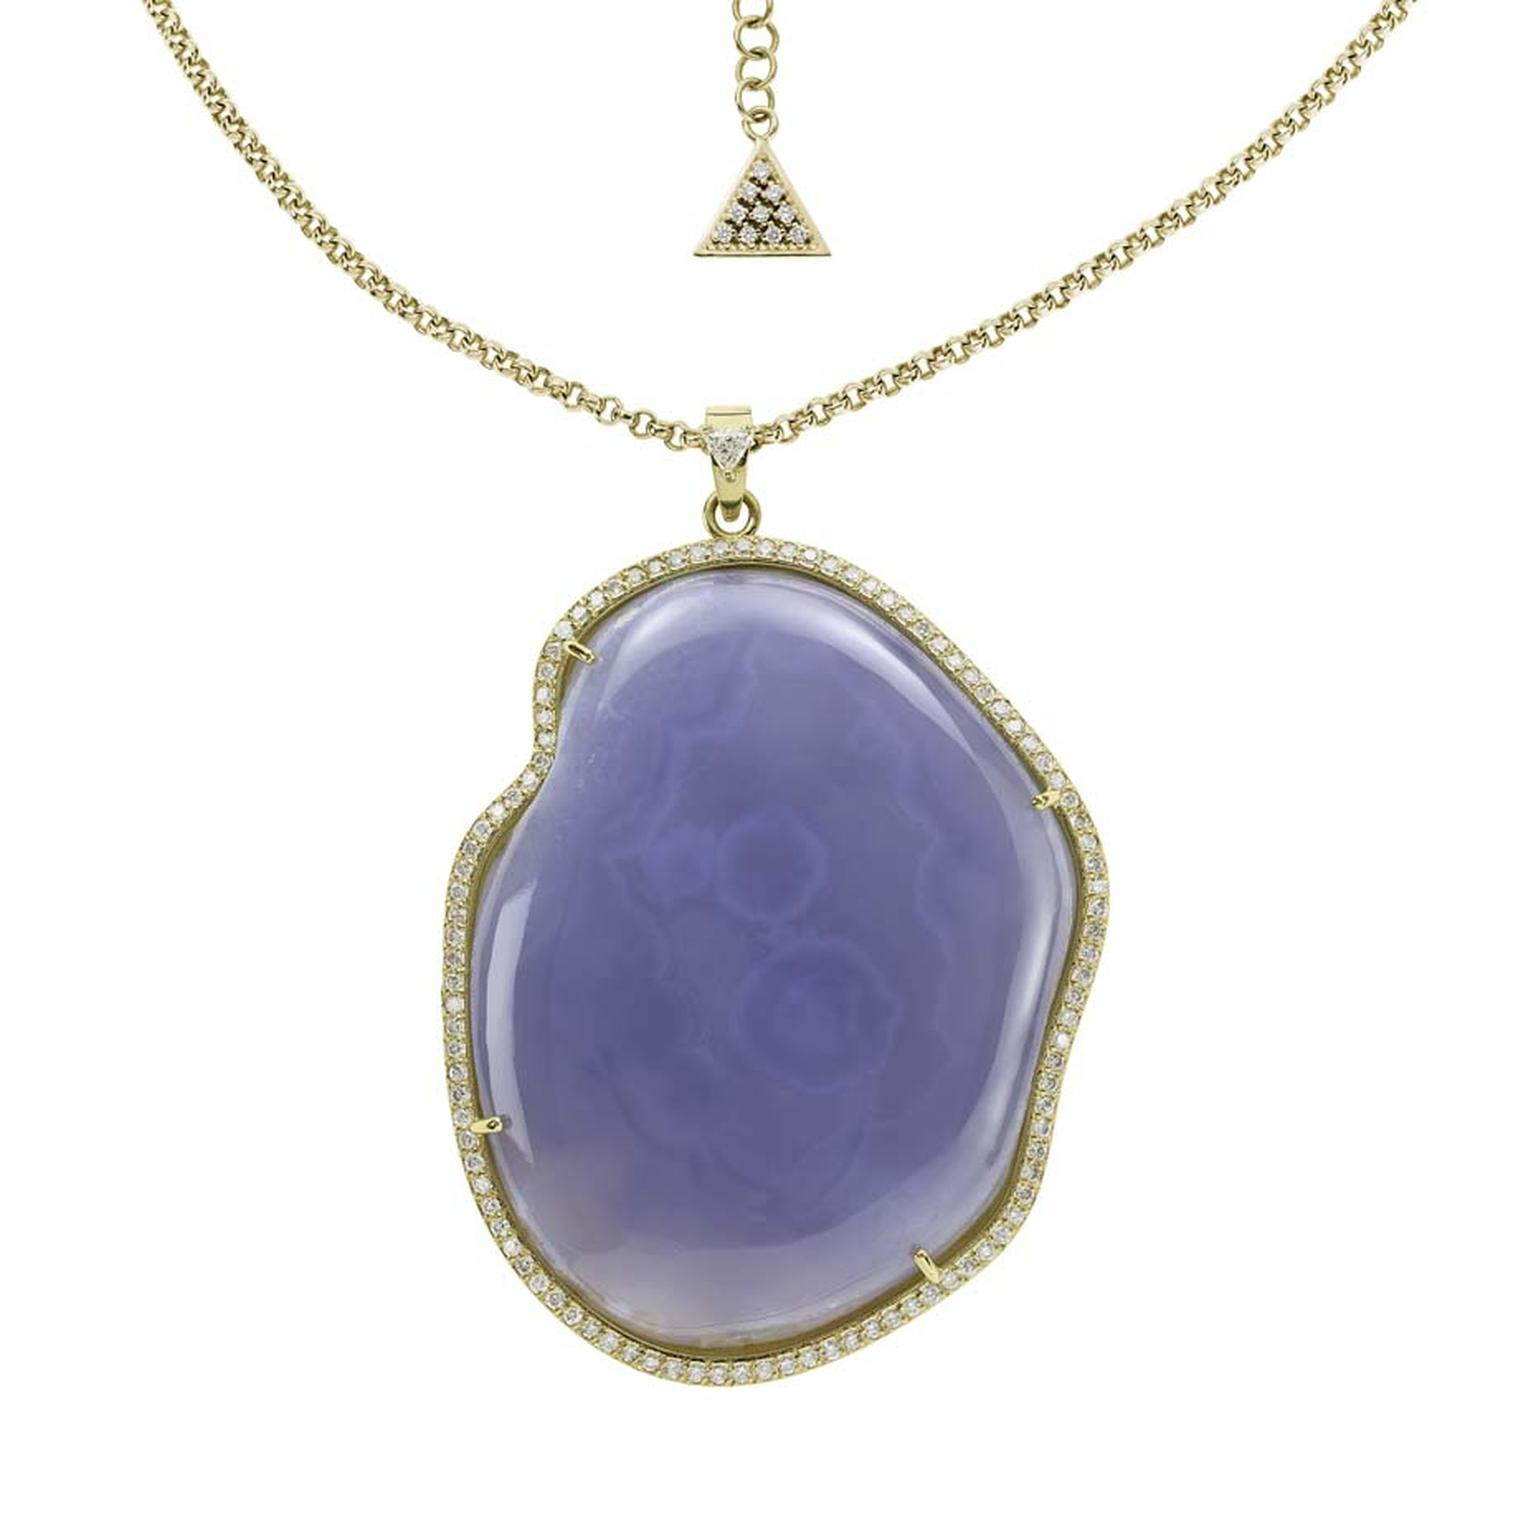 Misahara Adriana blue chalcedony necklace in gold and diamonds, from the Adriatic collection.